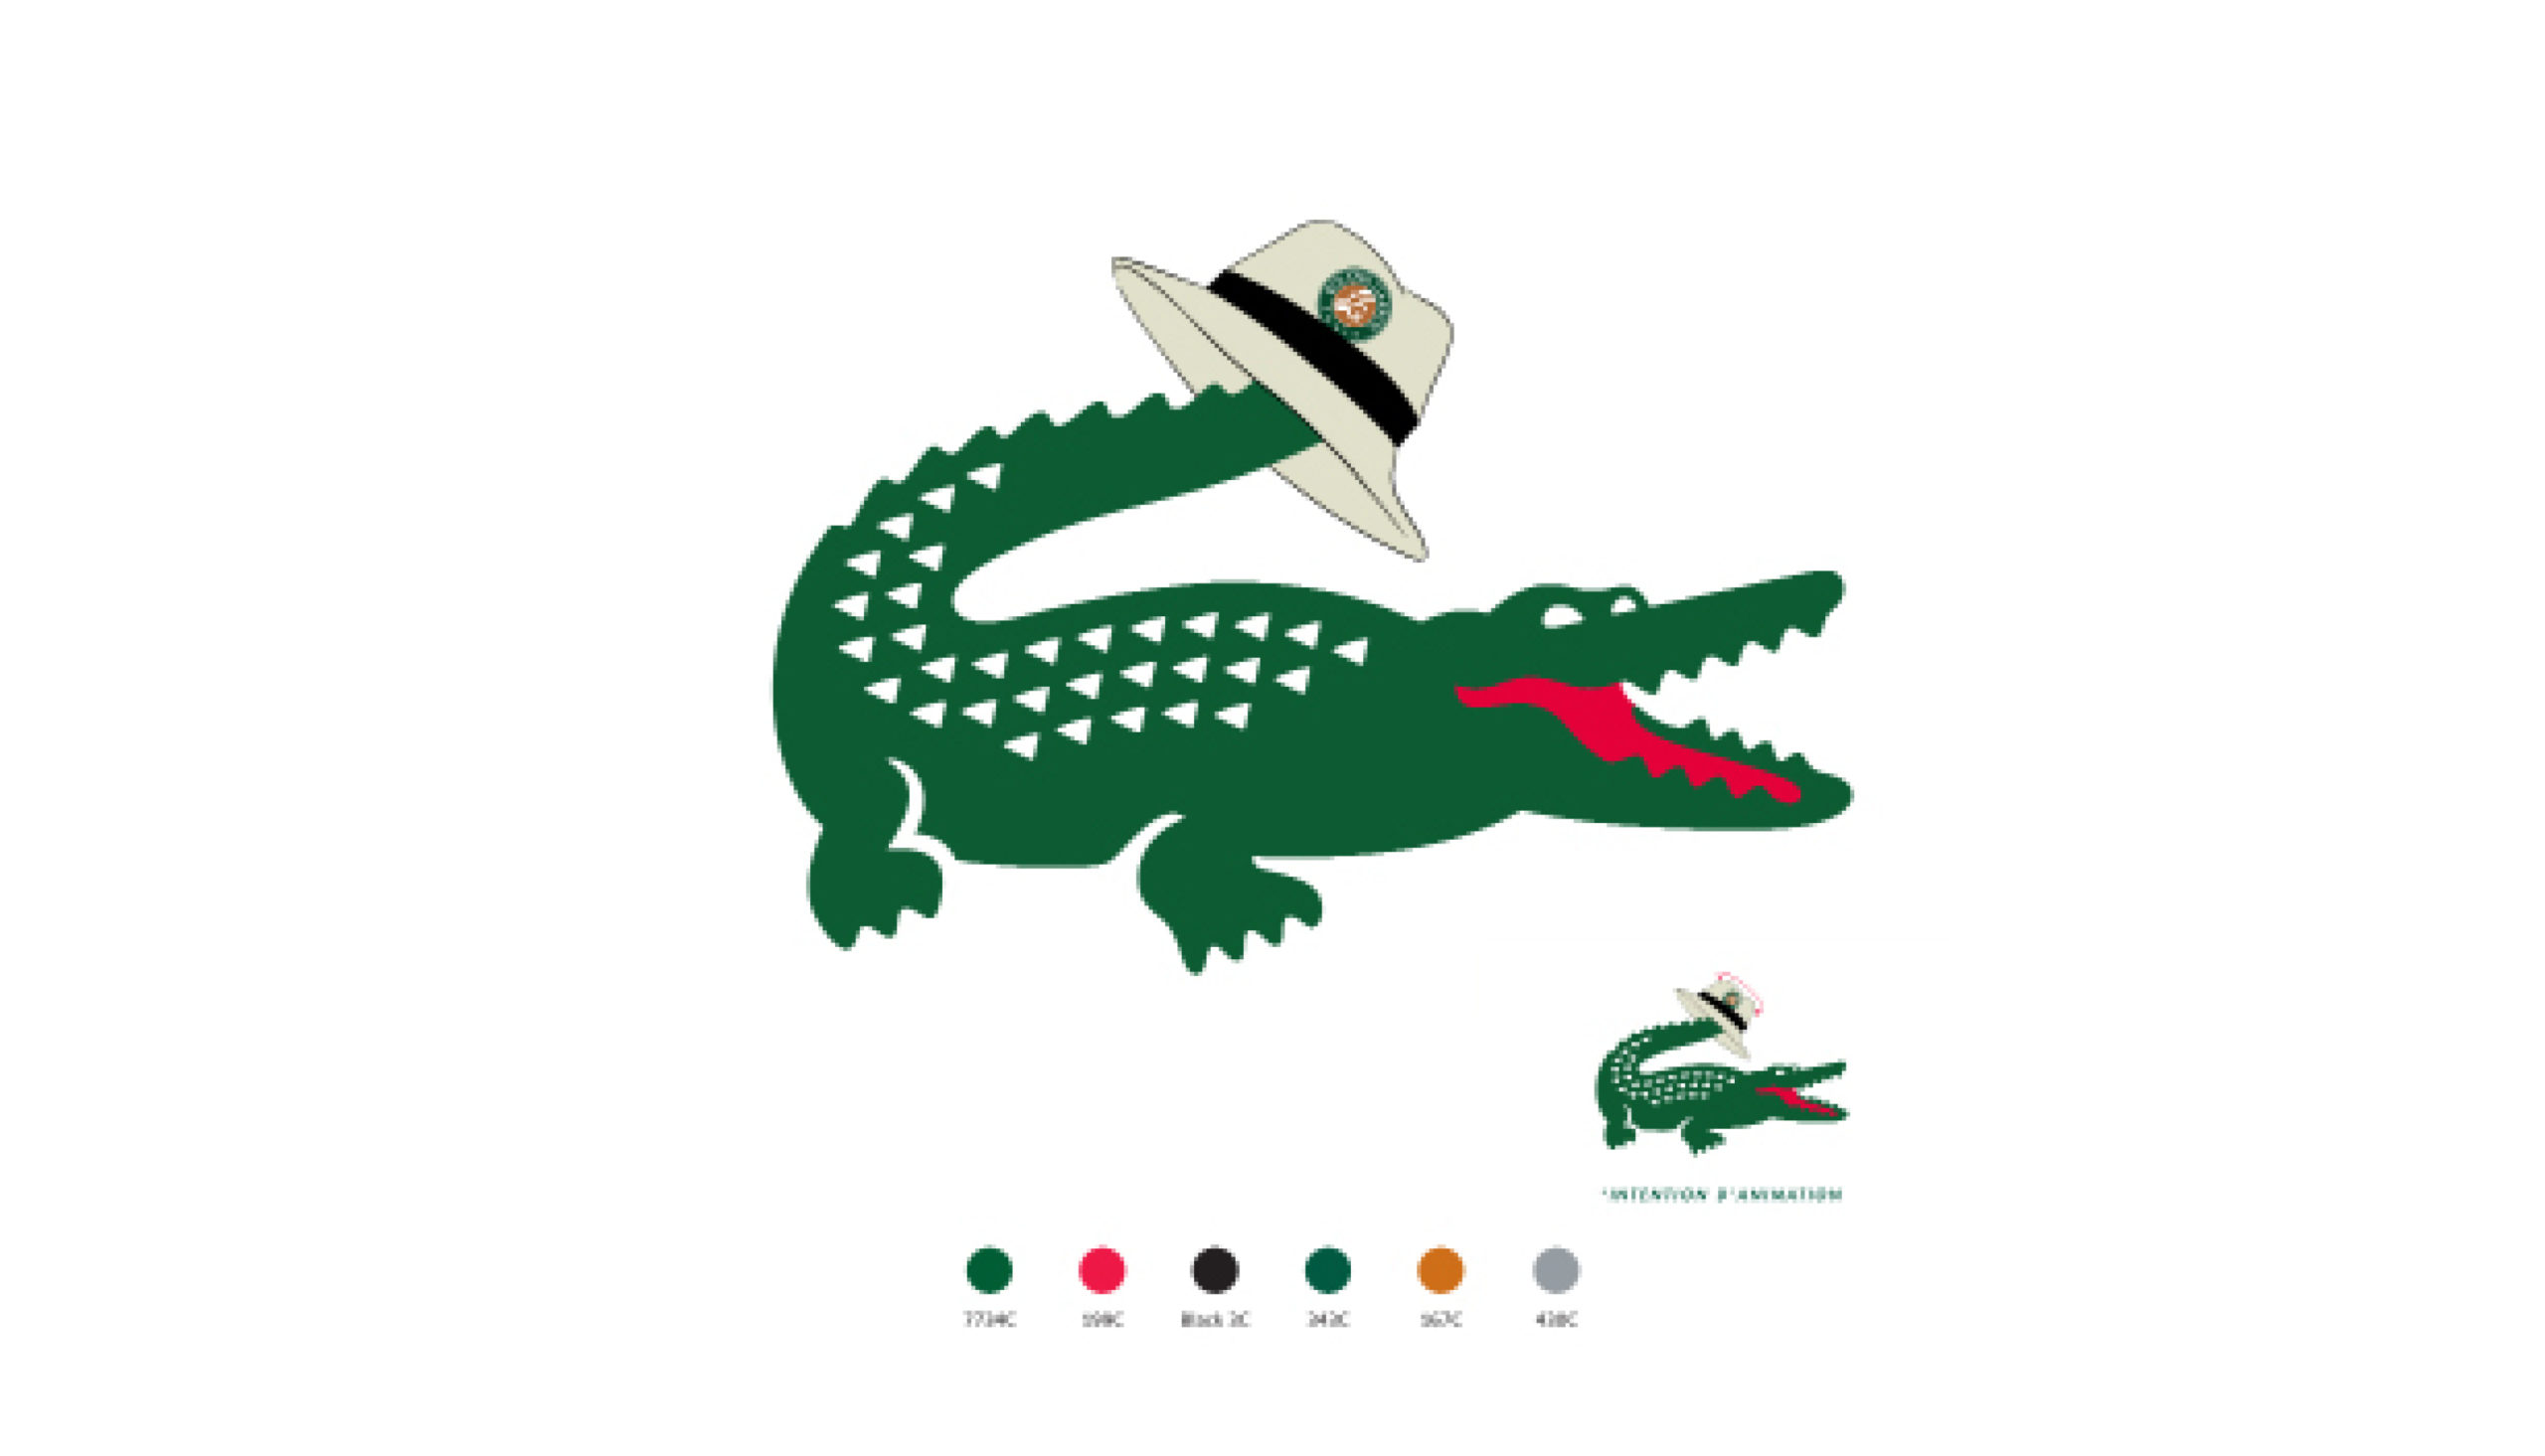 LACOSTE_STICKERS_HOBBYNOTE_R_0411